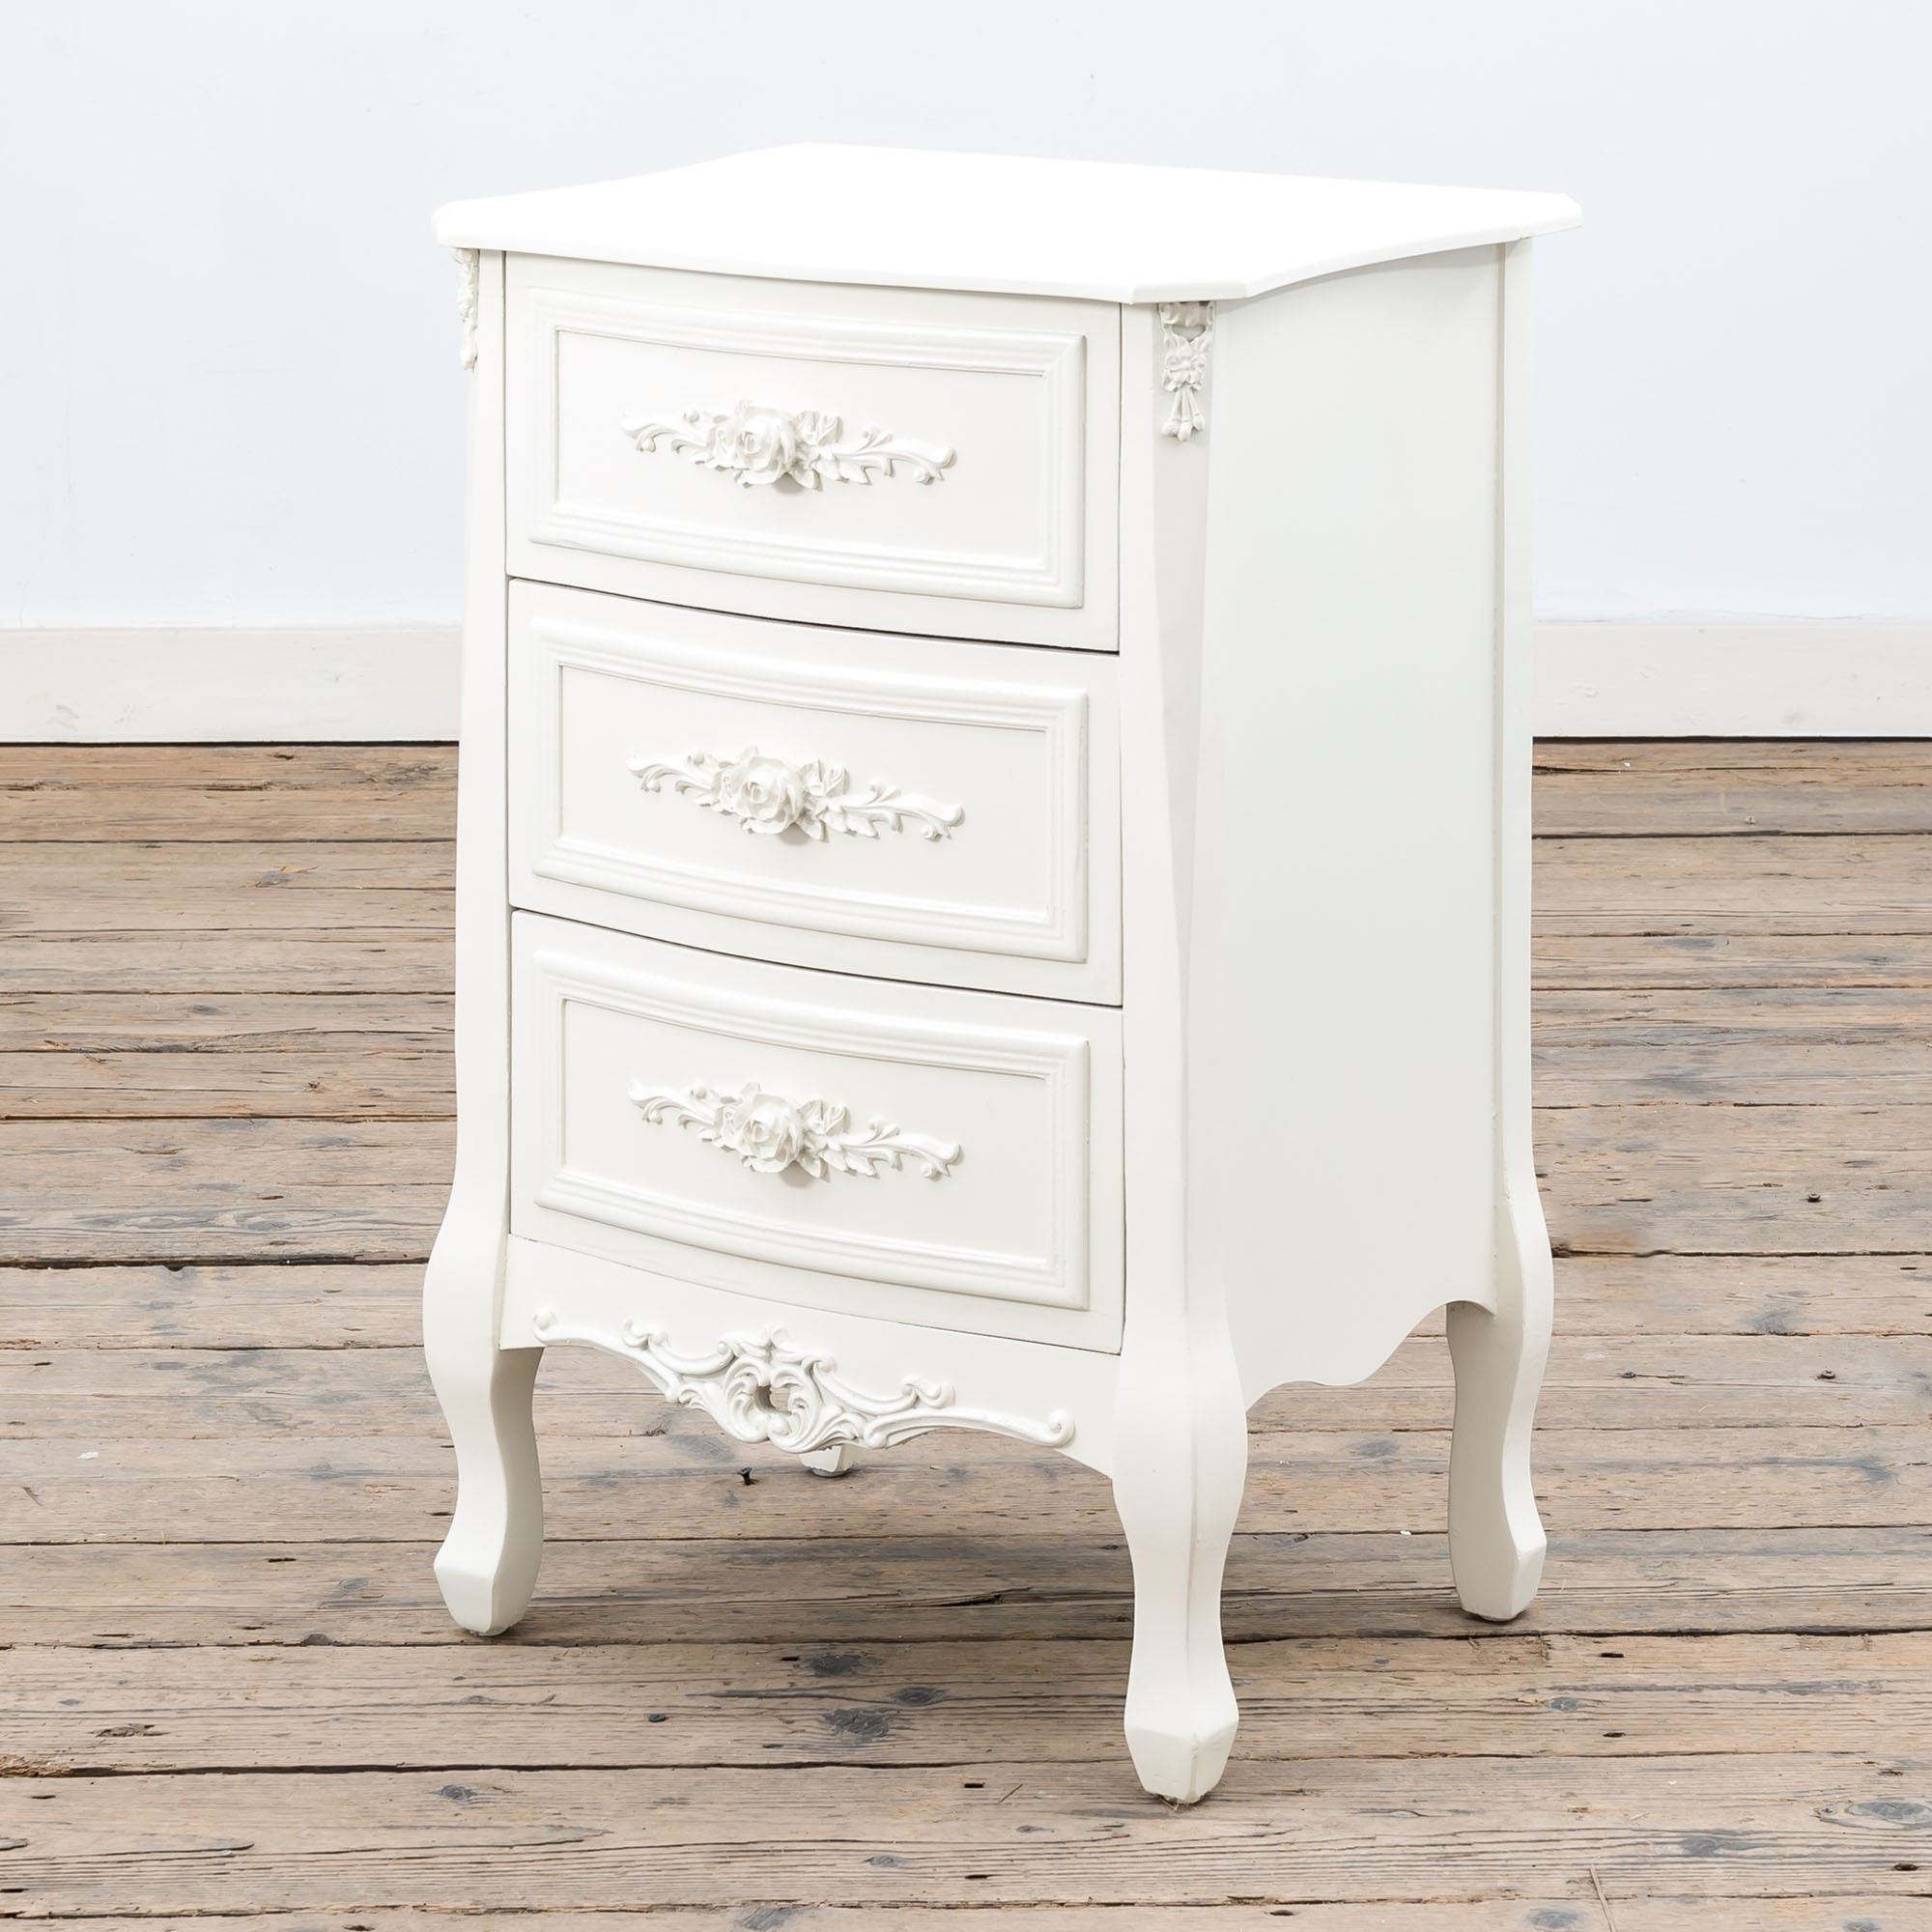 Antique French Style Rose White Bedside Table White Bedside Table